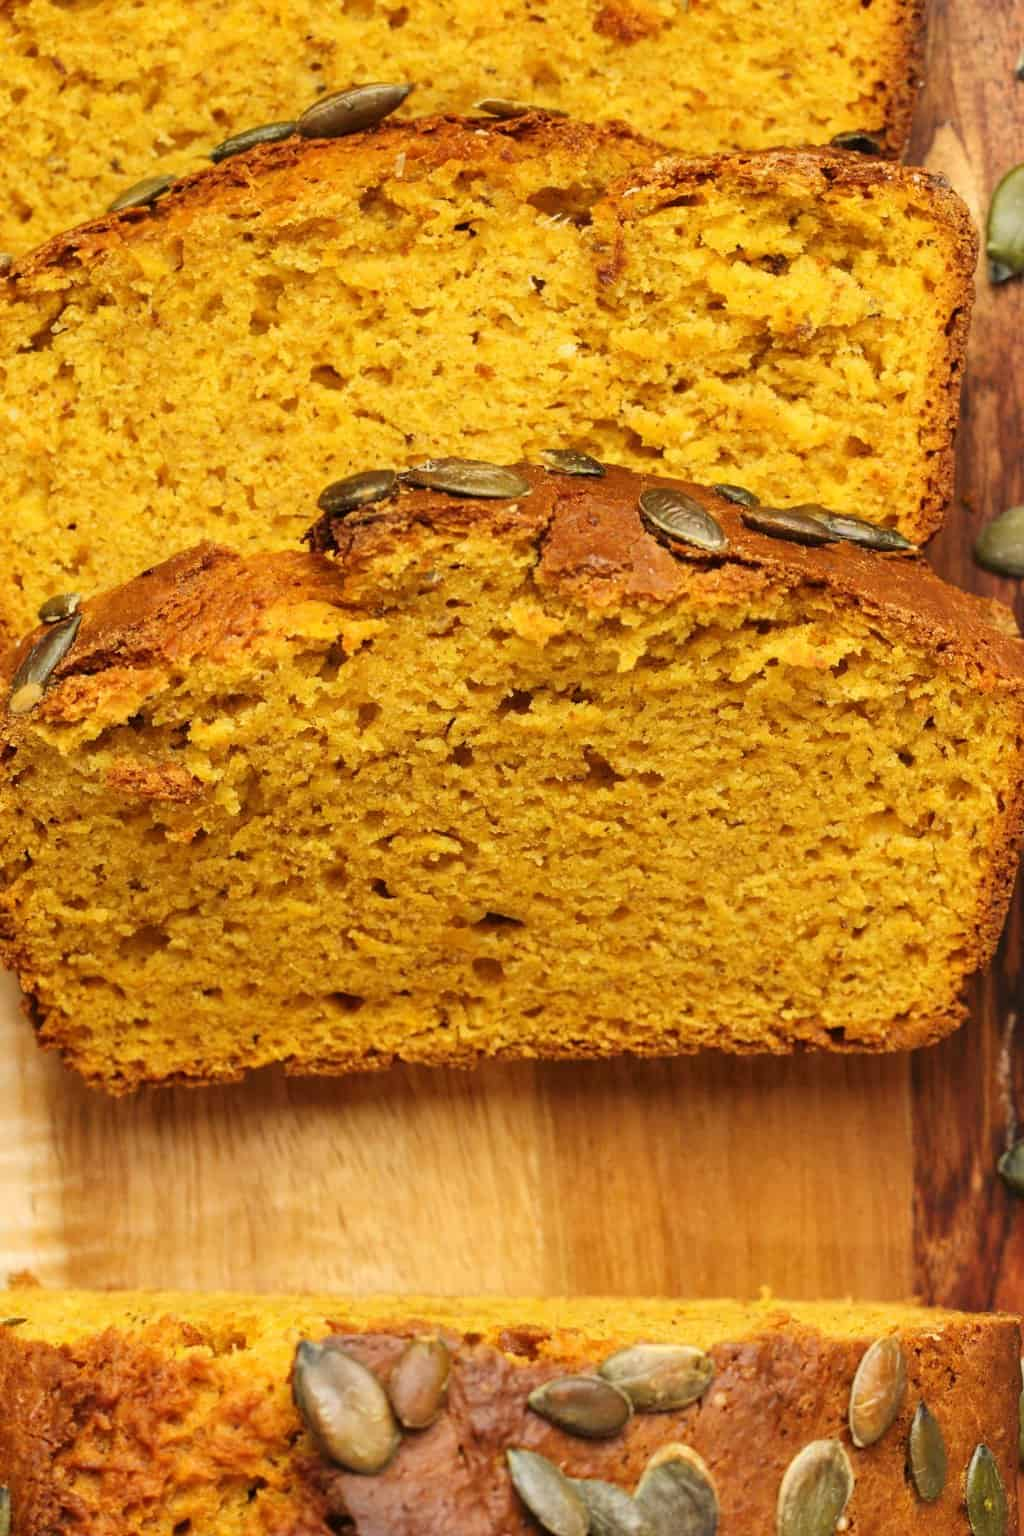 Slices of vegan pumpkin bread on a wooden board.